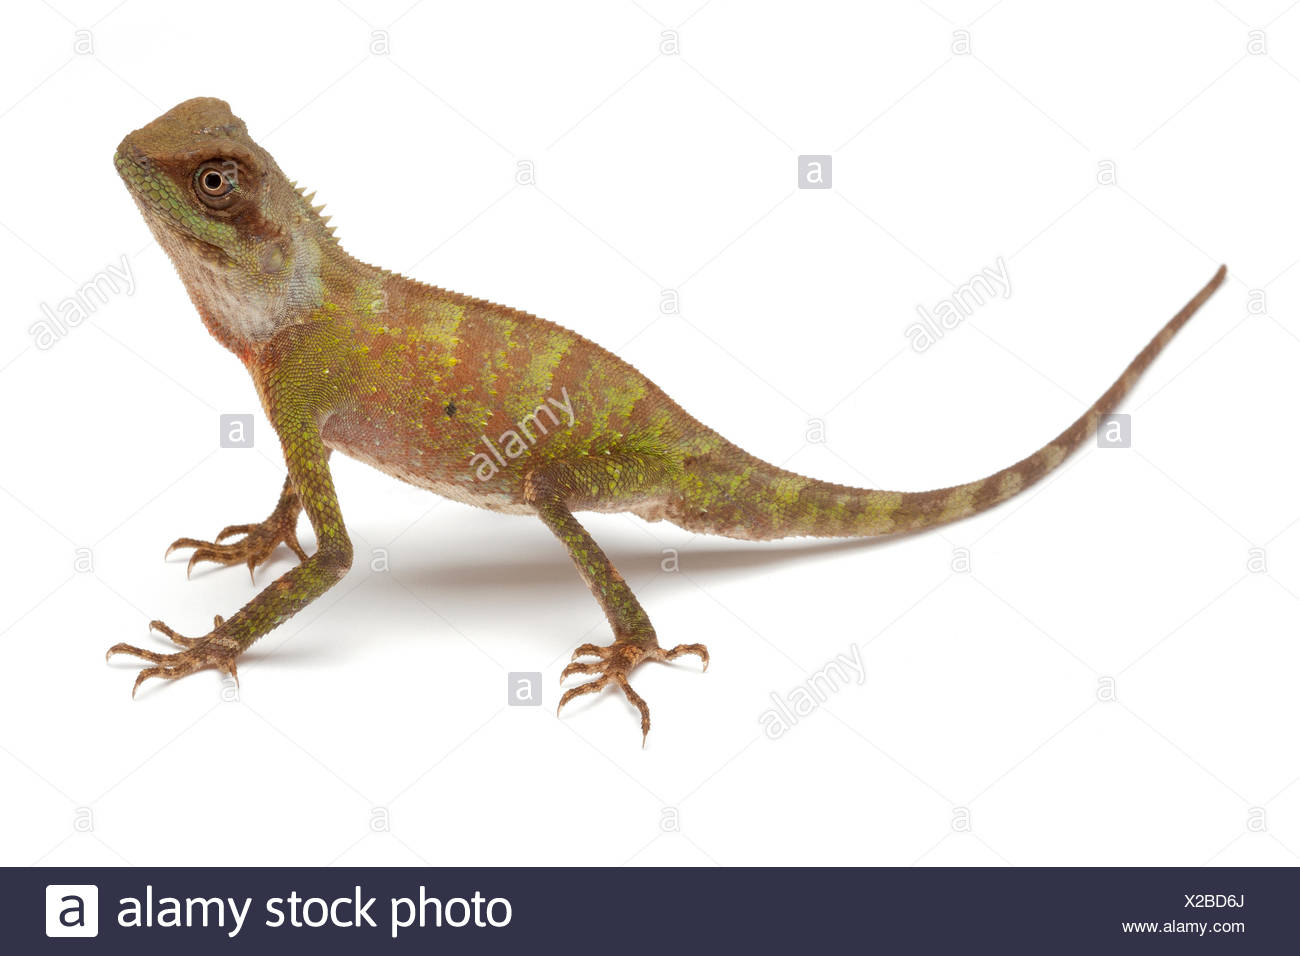 Scale-bellied Tree Lizard on white background - Stock Image